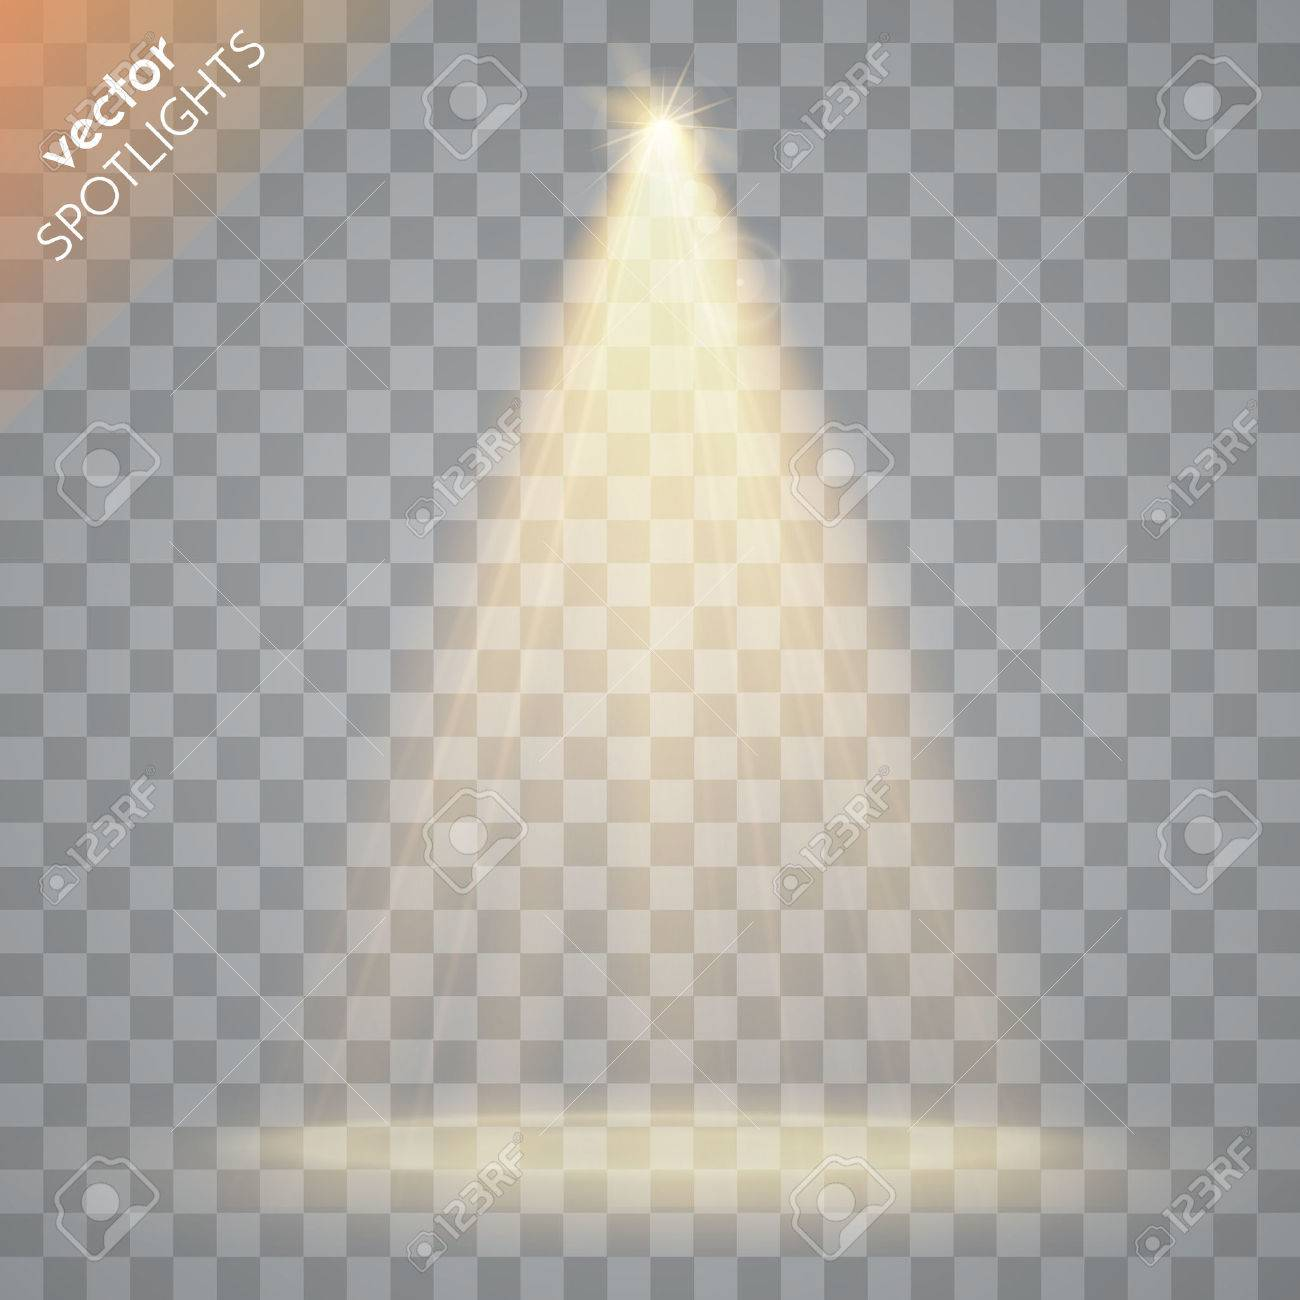 Abstract Vector Spotlight isolated on transparent background. Light Effects. - 51635821